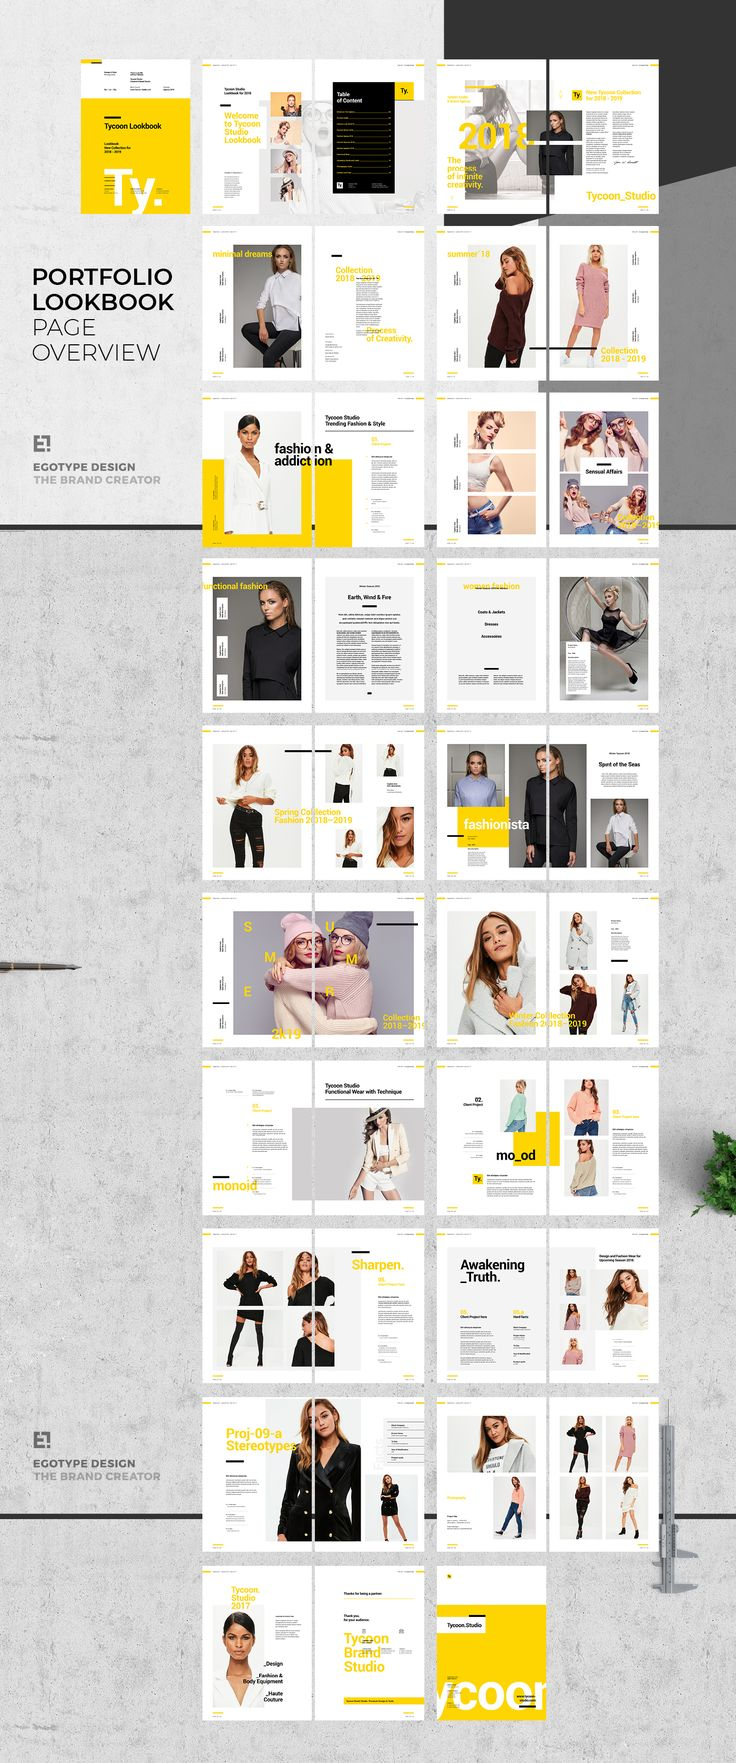 Project and Design Lookbook TemplateMinimal and Professional Work and Project Design Portfolio template for creative businesses, created in Adobe InDesign in International DIN A4 and US Letter format. This item created for showcase portfollio, works, sk…